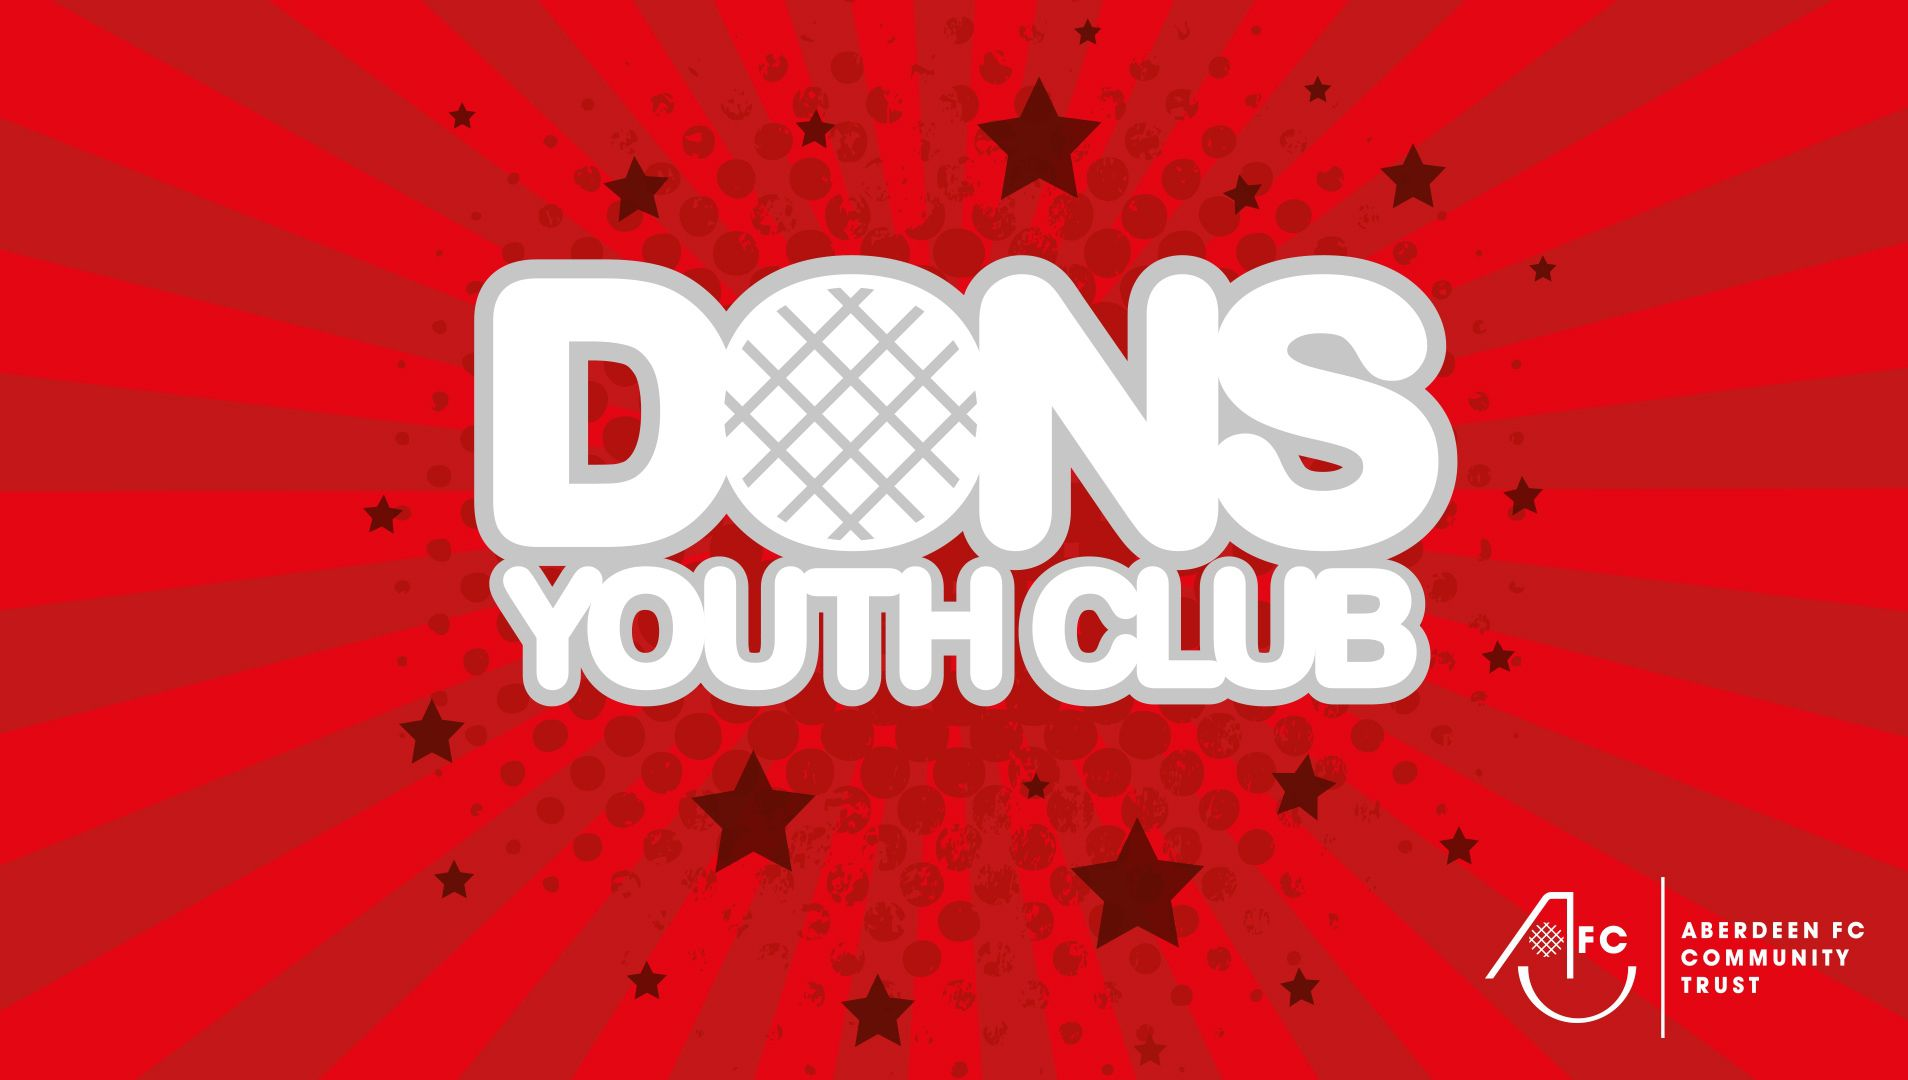 Dons Youth Club | Summer 2018